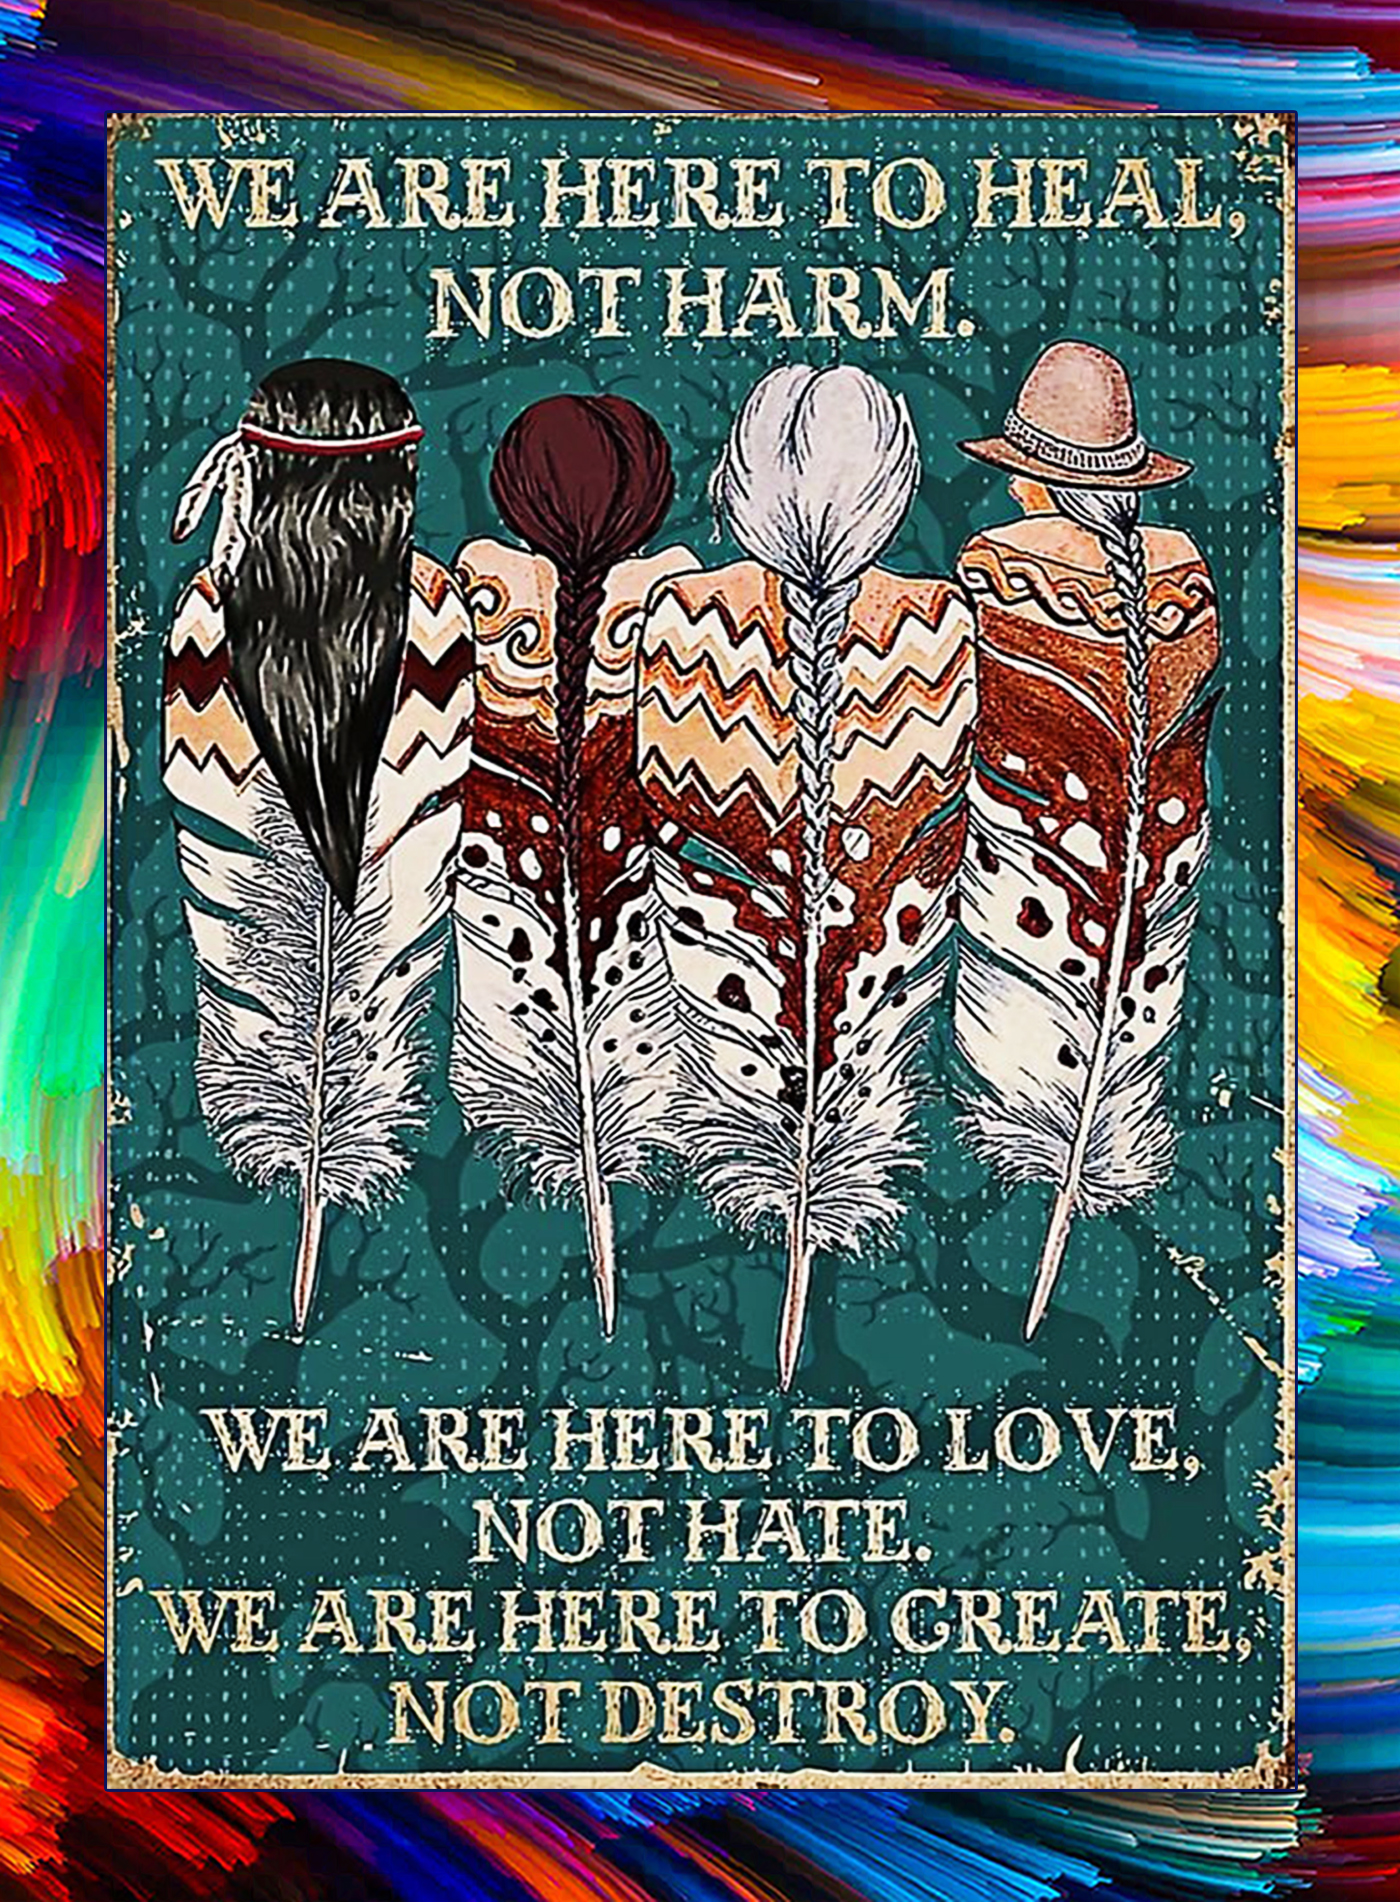 Native american we are here to heal not harm postrer - A1